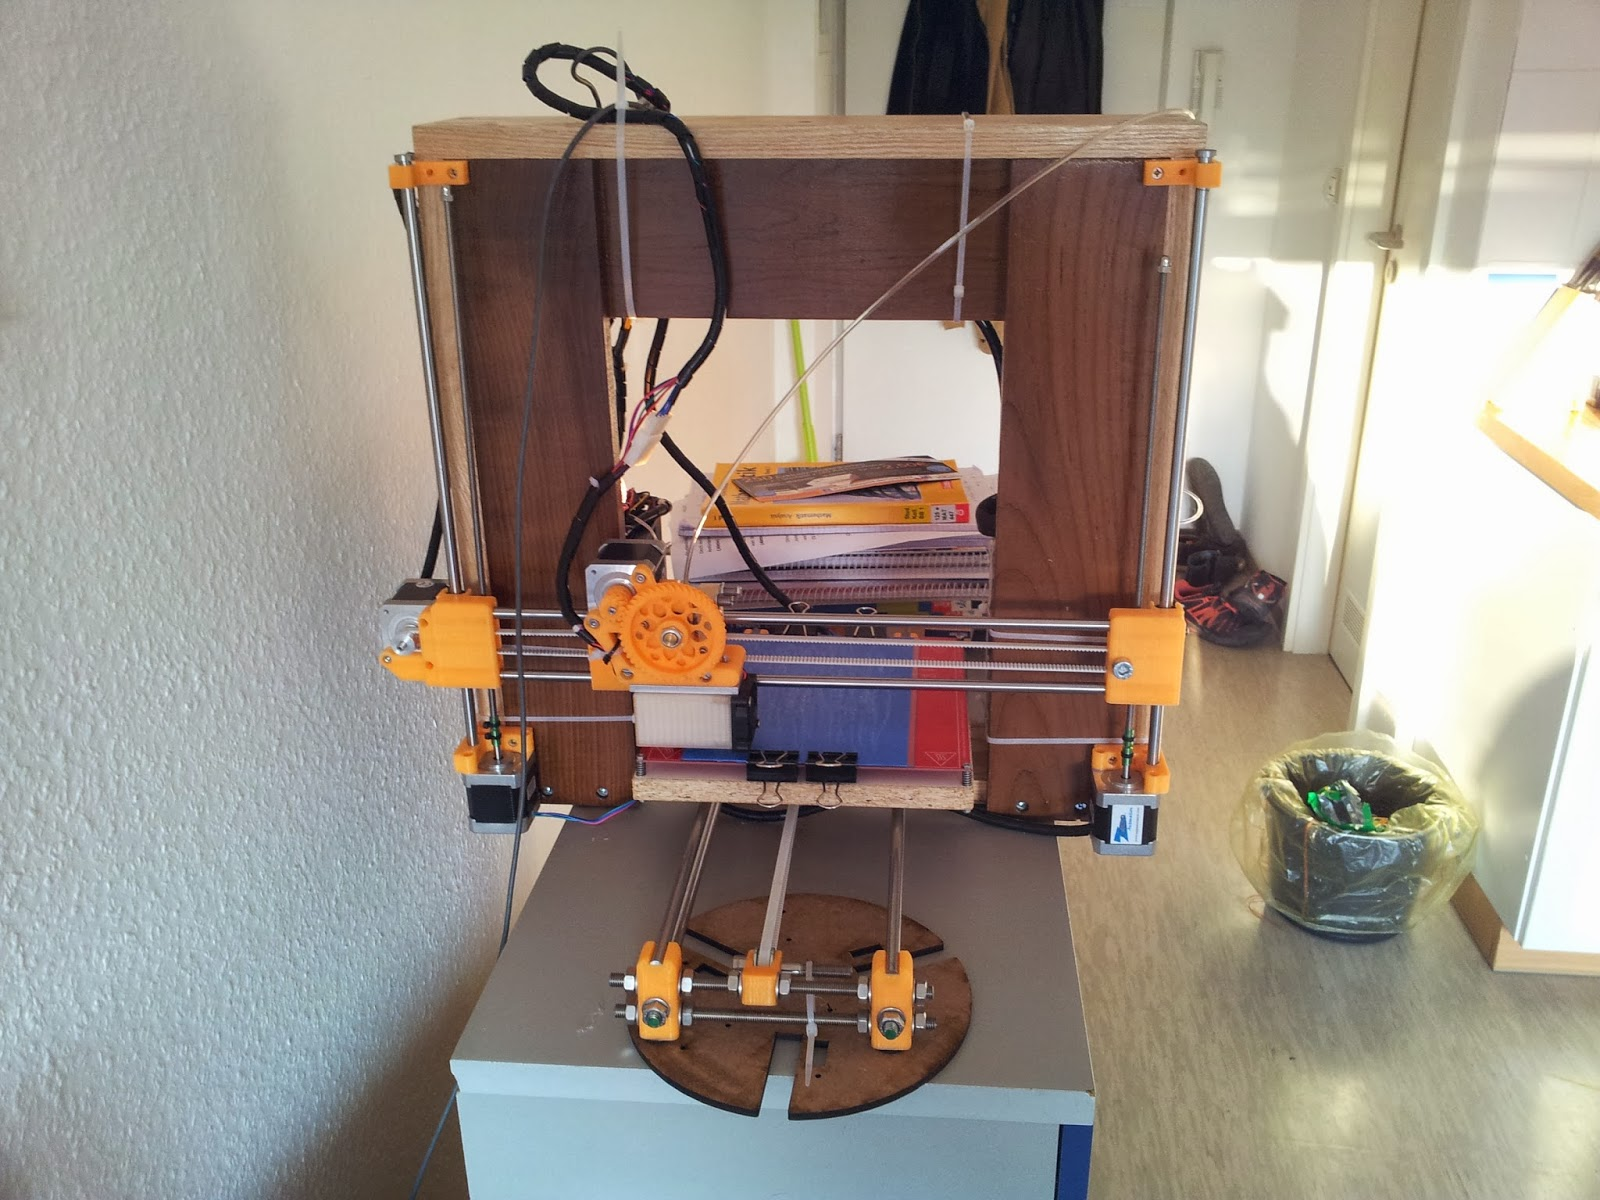 Diy 3d printers made from wood article mon 18 nov 2013 for Furniture 3d printer